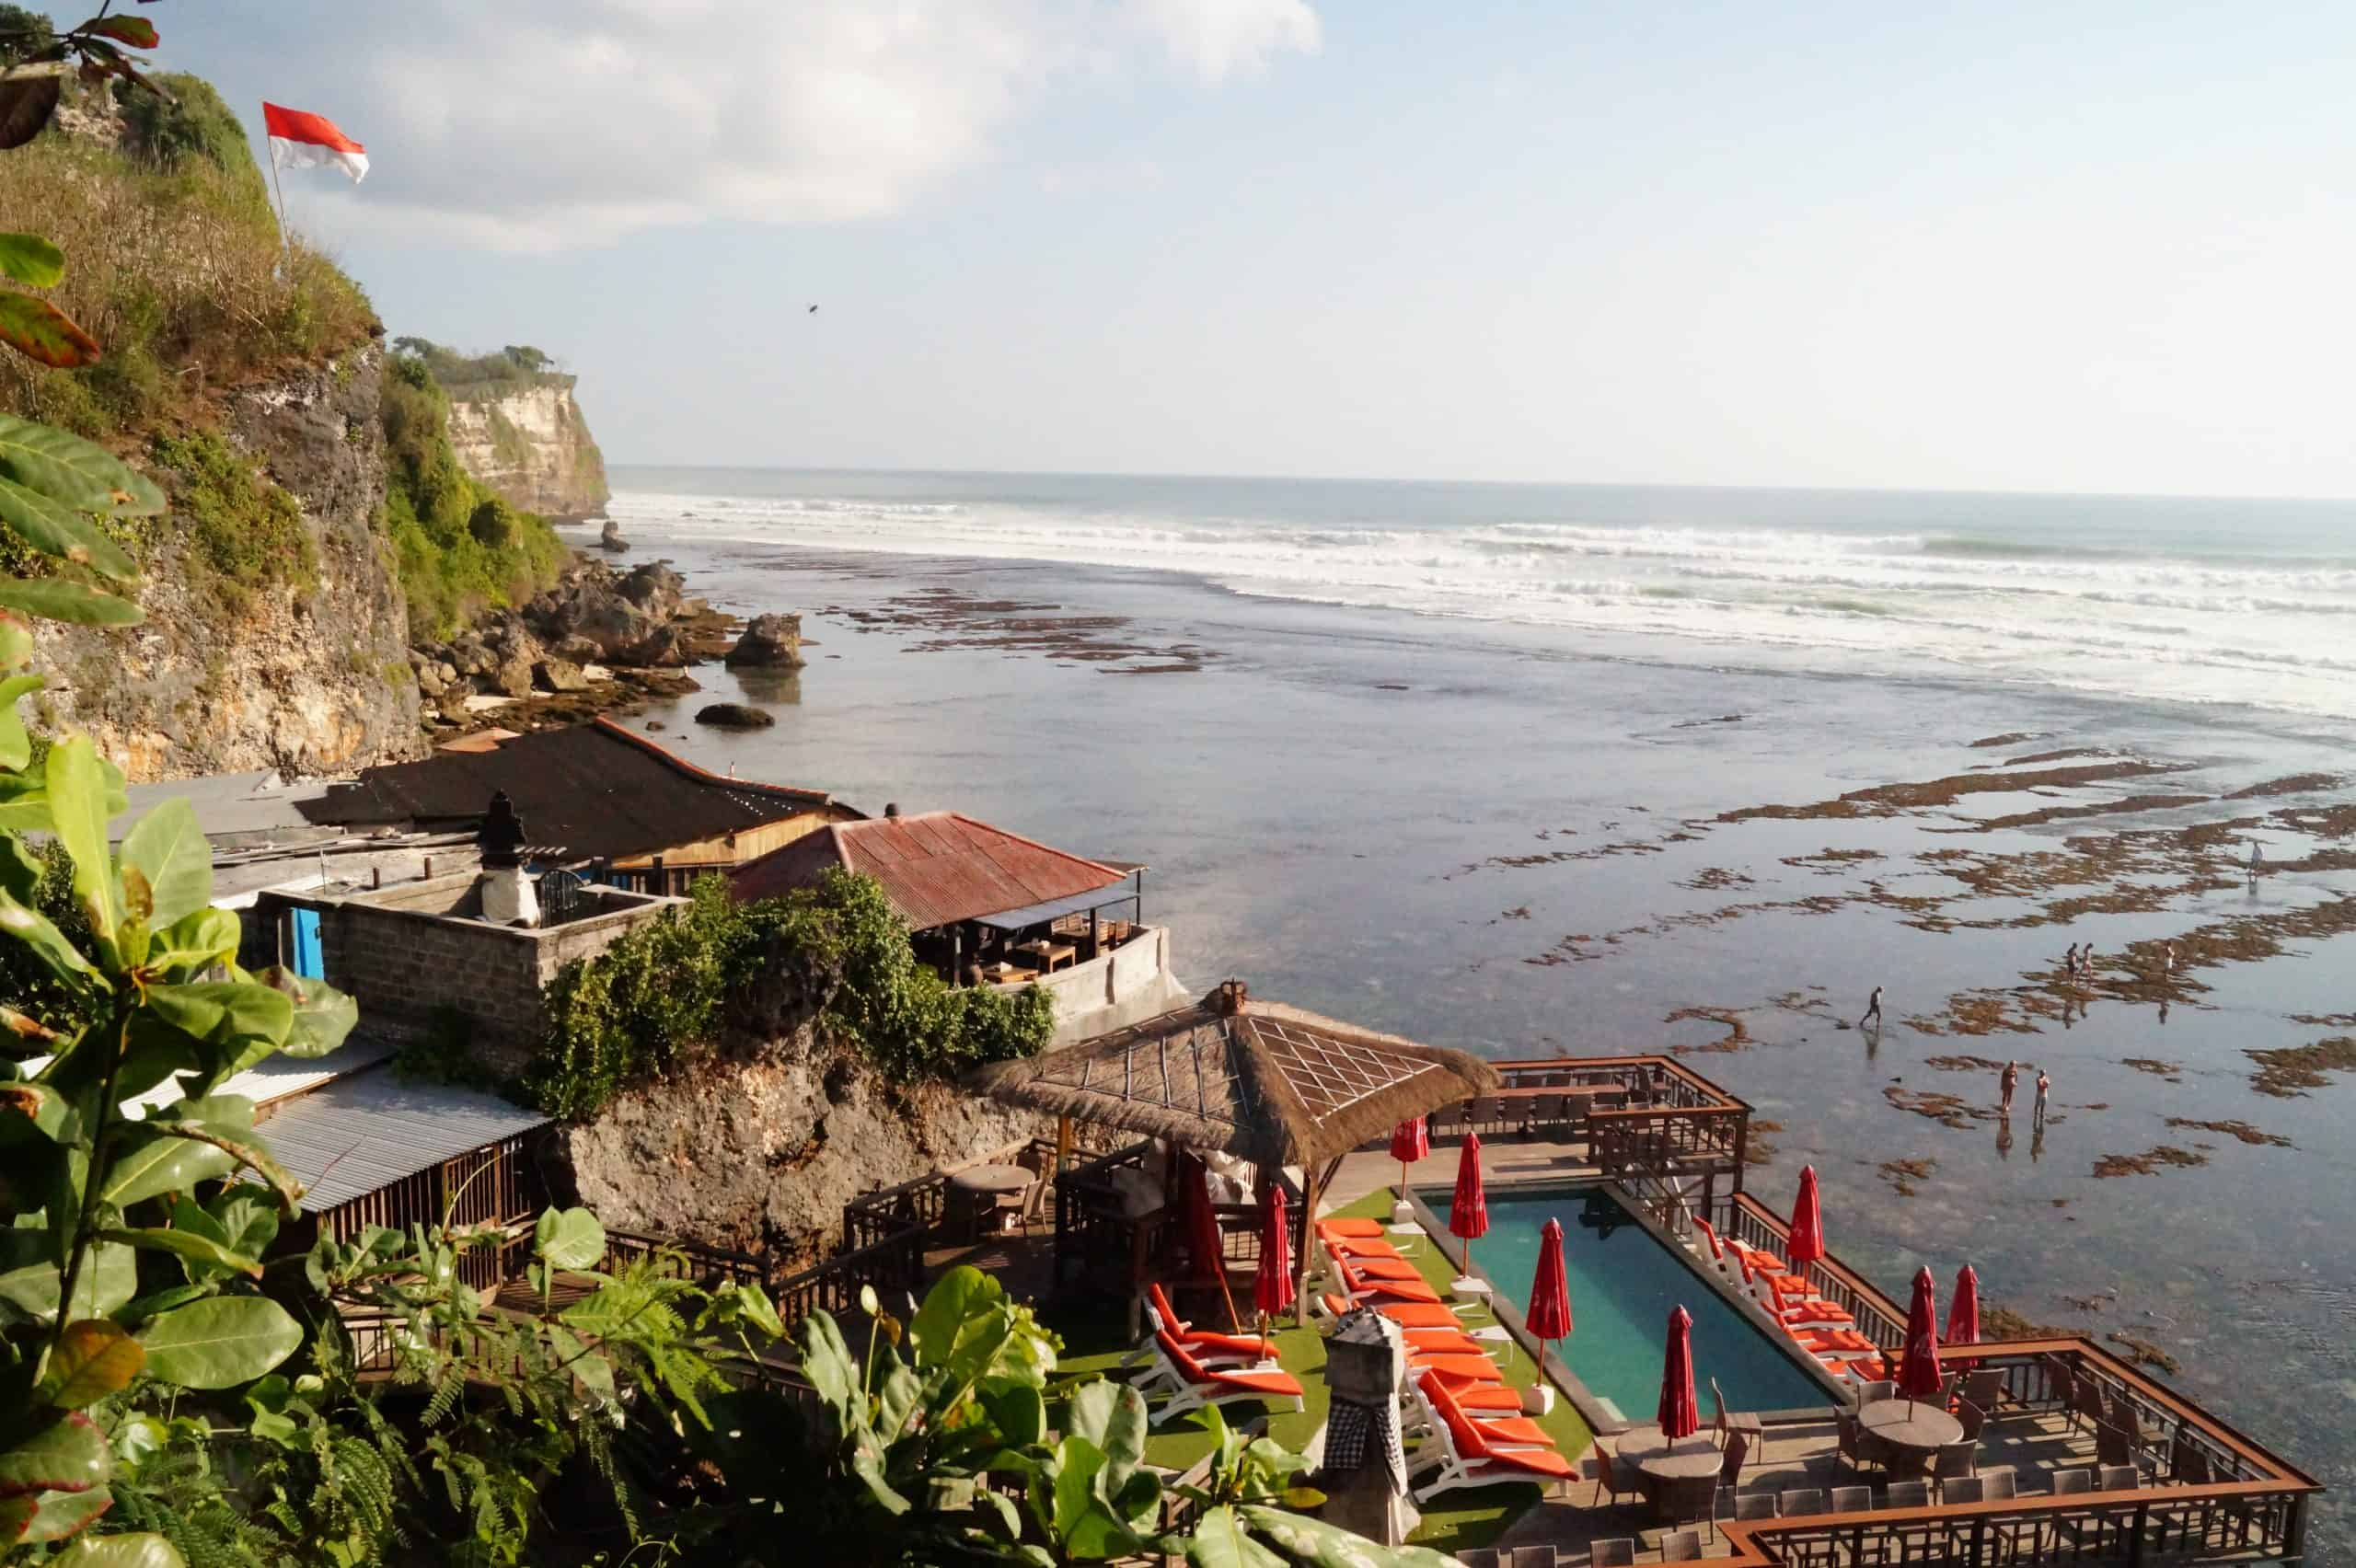 Bali Playas de Uluwatu Playa Suluban Mirador scaled - The Uluwatu Temple and the surrounding beaches, travel guide